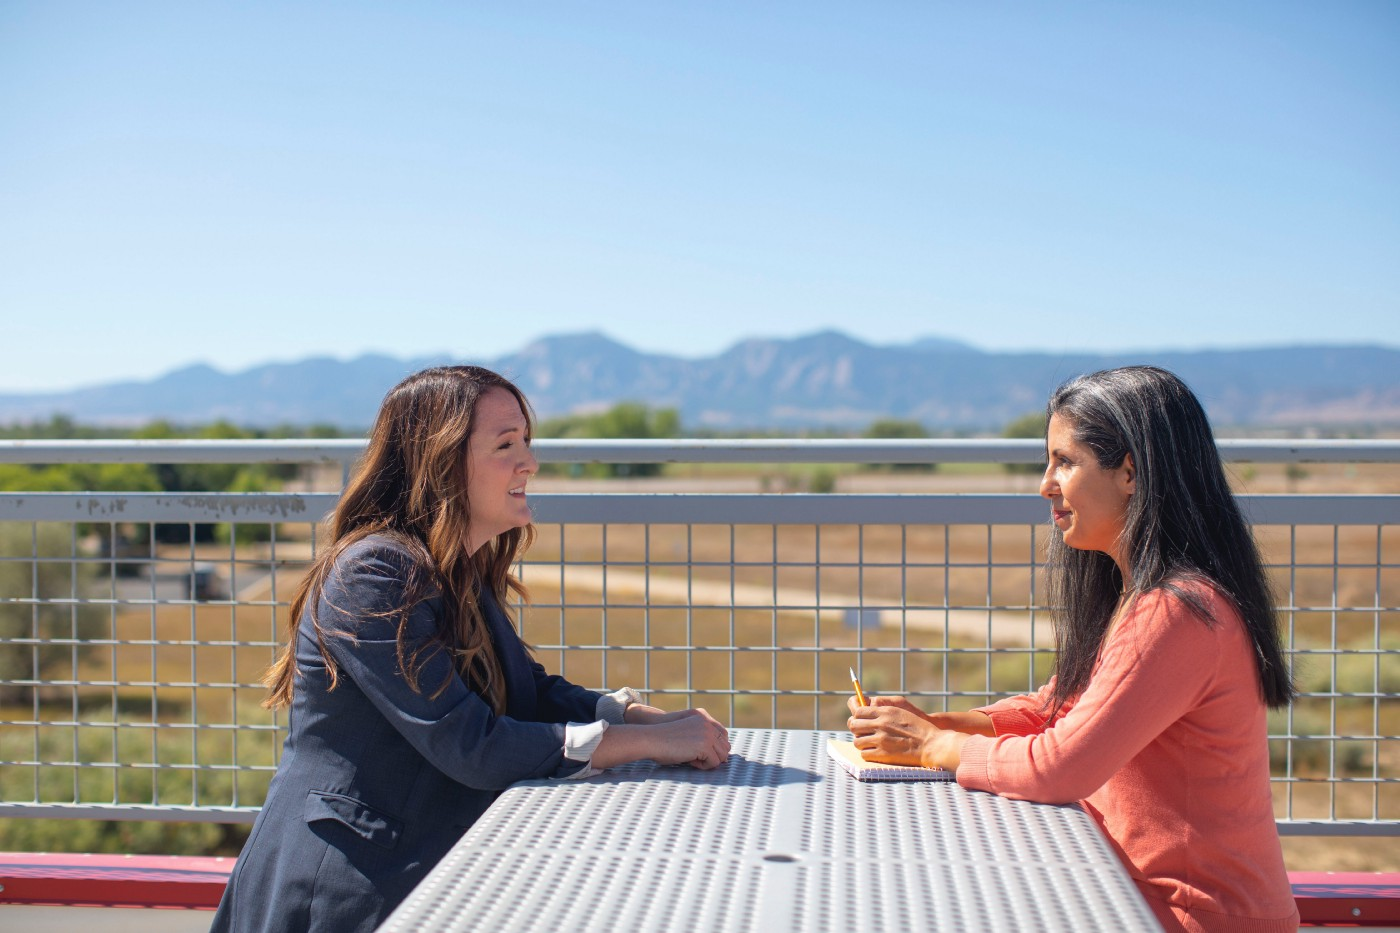 Two women are sitting outside and talking. They are sitting at a metal table and they seem to be having a business meeting. There is a view of nearby hills. It's a sunny day.